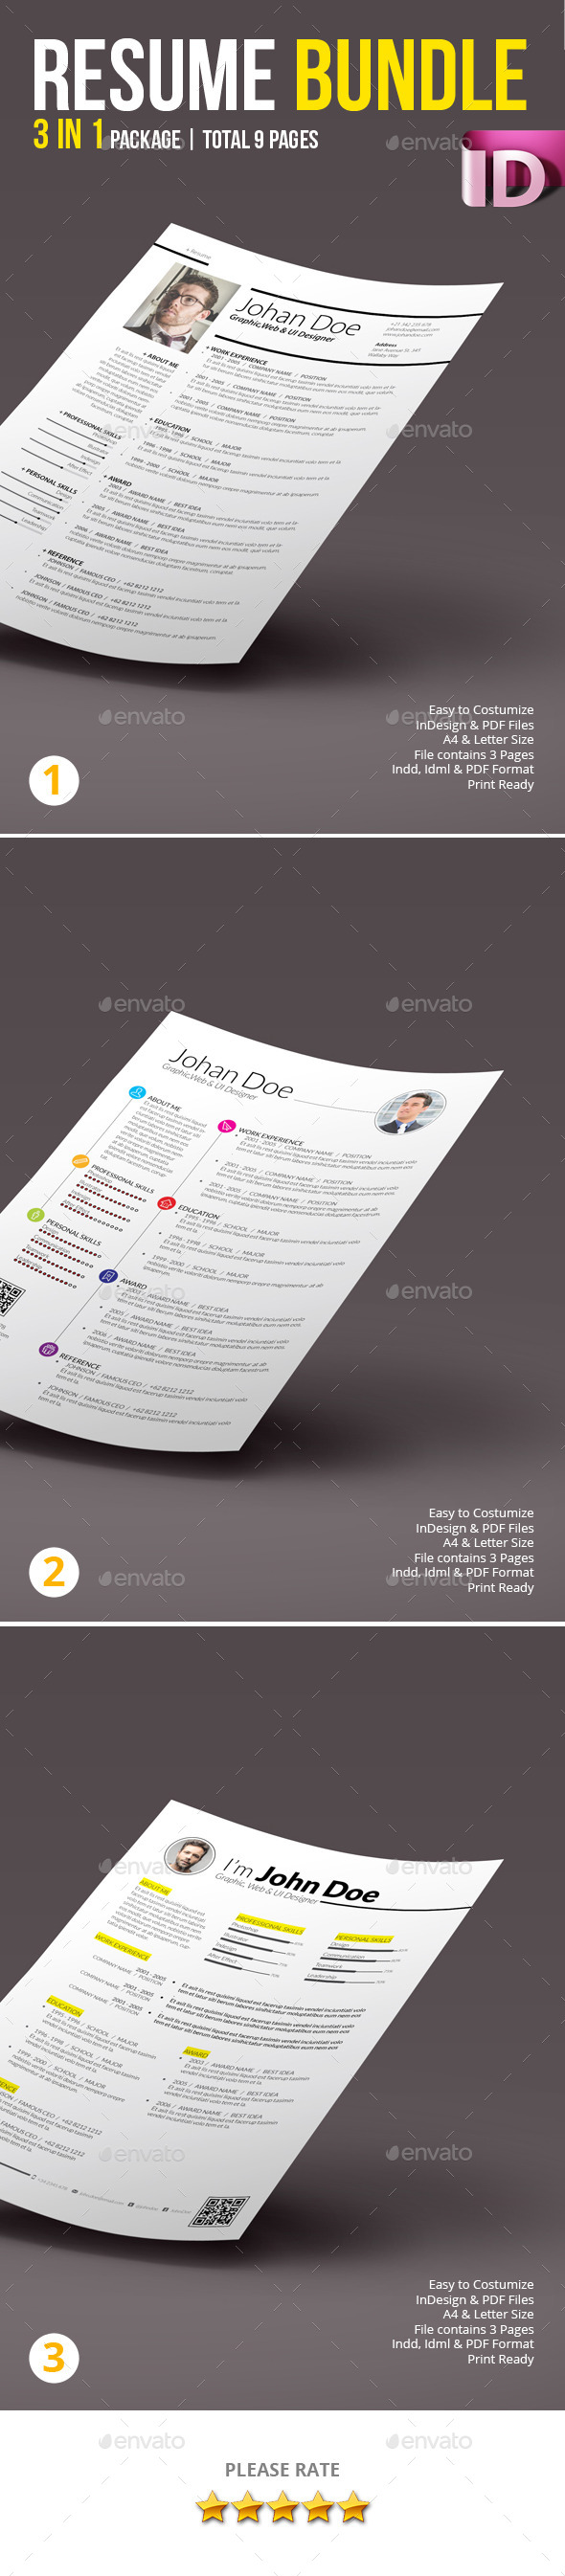 GraphicRiver Resume Bundle 01 10032020